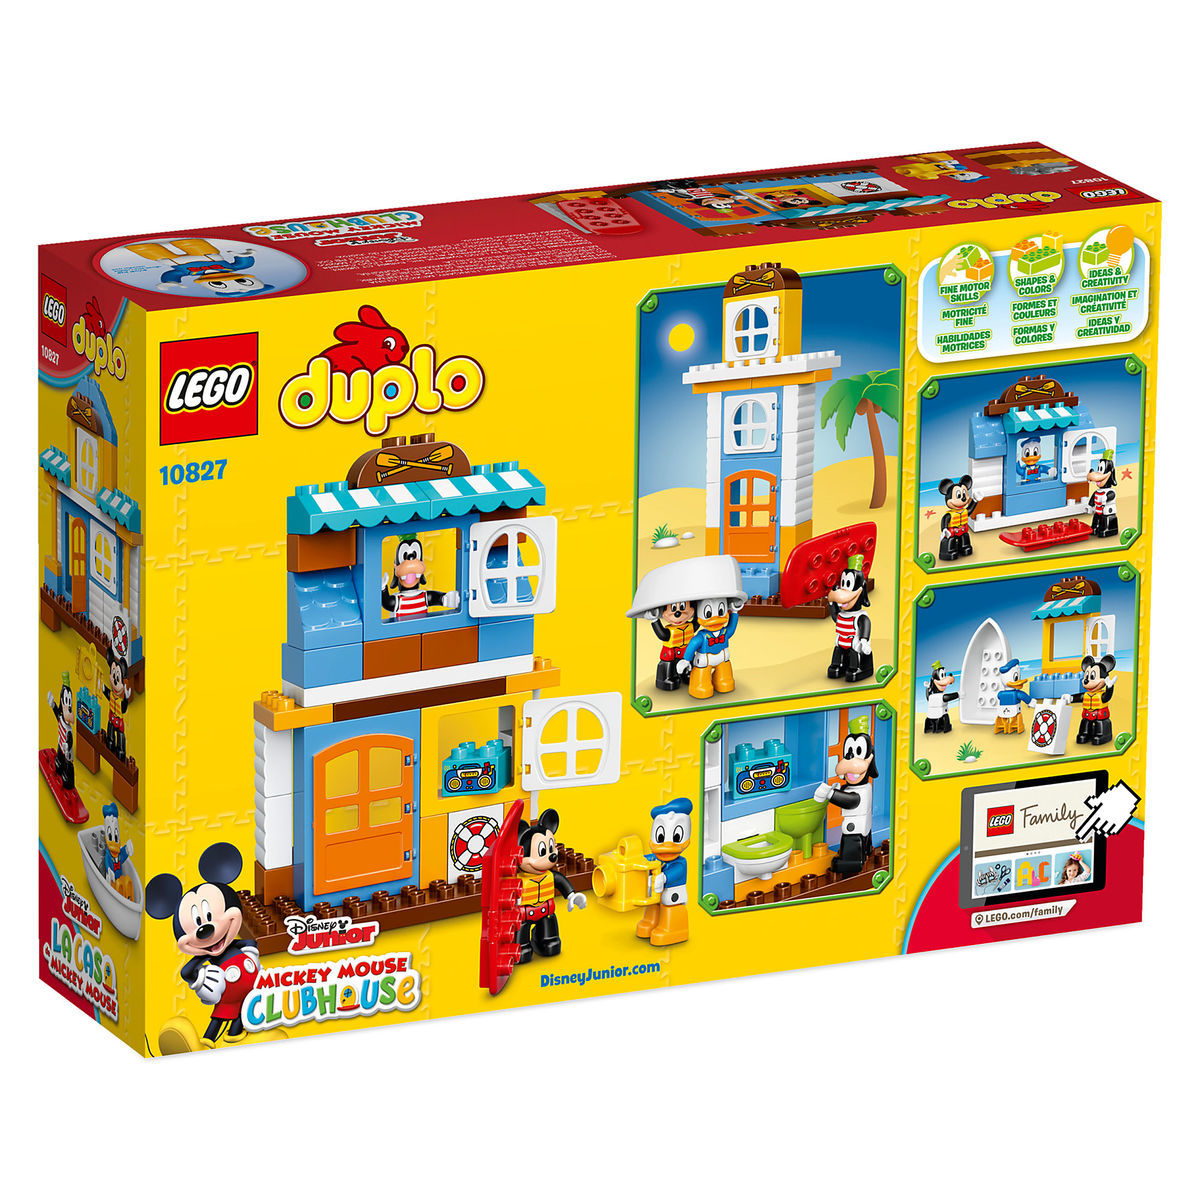 Mickey Mouse & Friends Beach House LEGO Duplo Playset | shopDisney